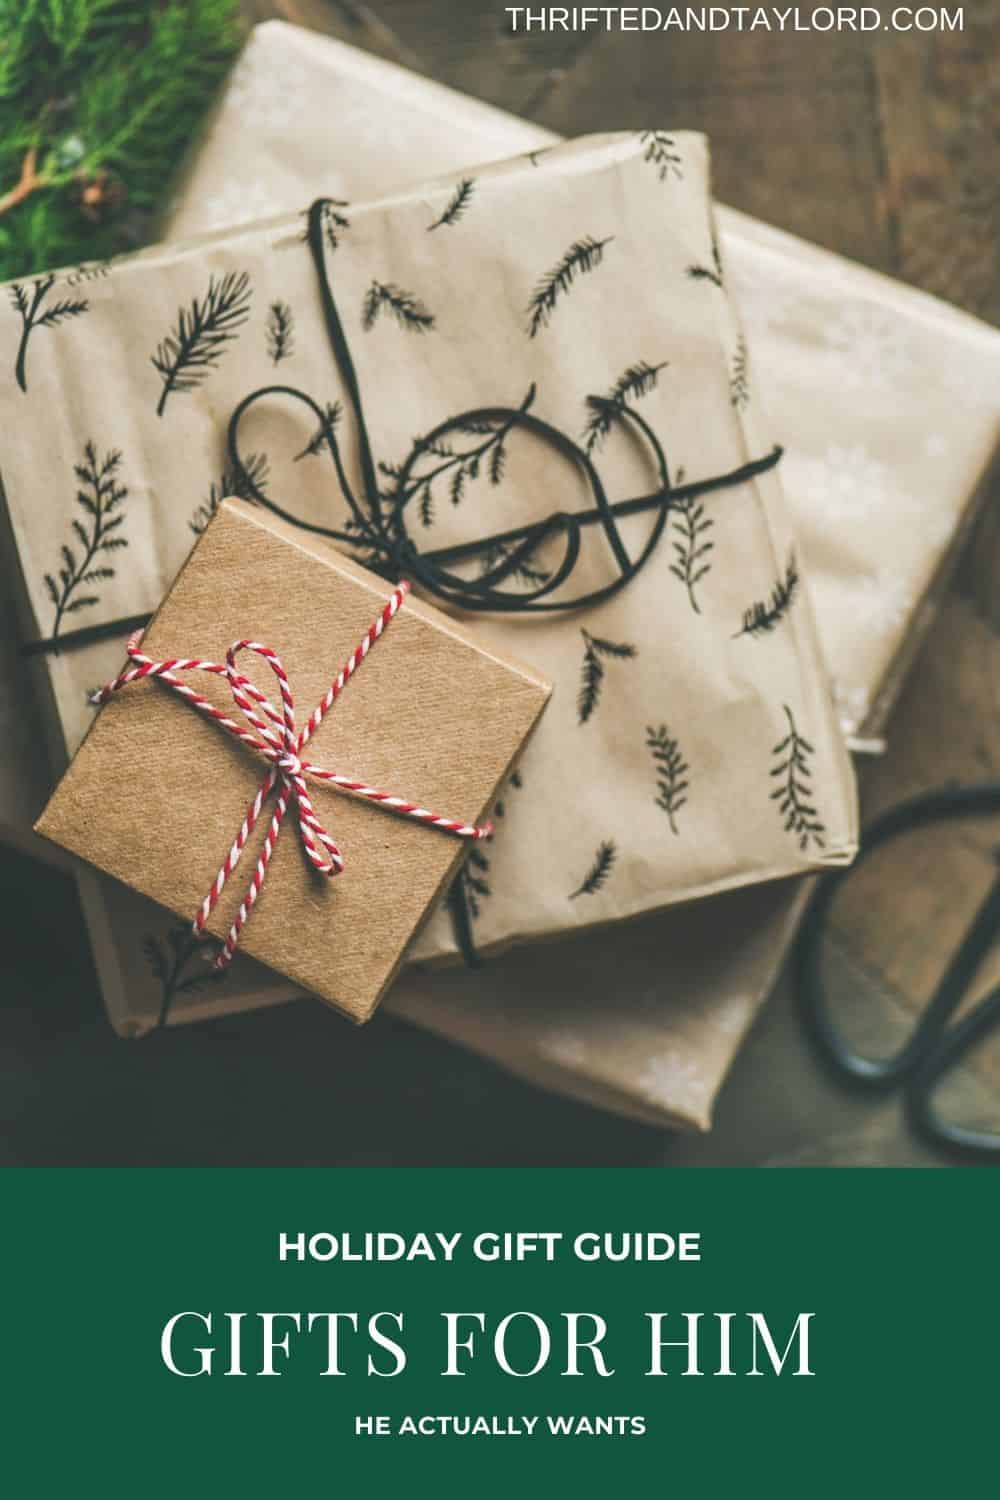 Gifts For Him He Will Actually Use | Holiday Gift Guide